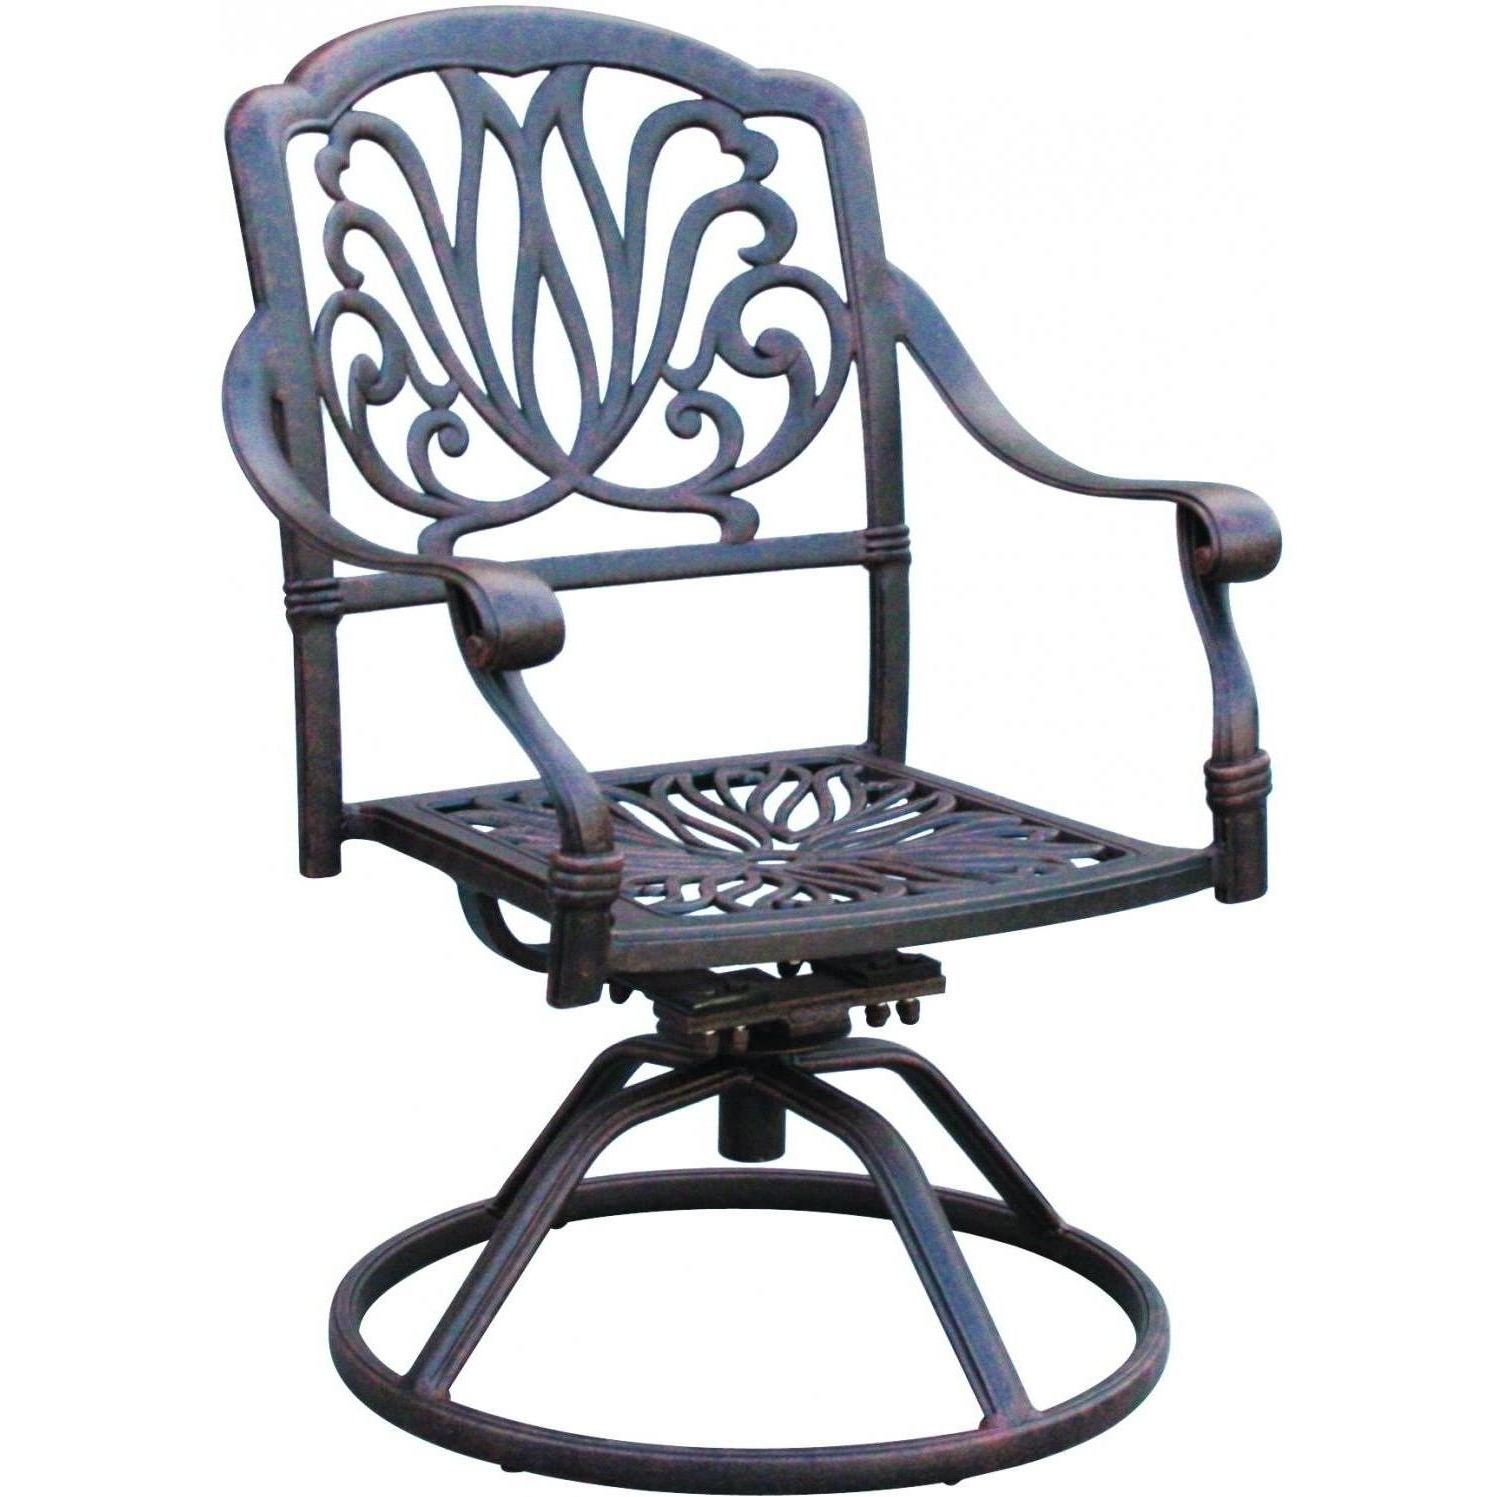 Darlee Elisabeth Cast Aluminum Patio Swivel Rocker Dining Chair Inside Trendy Aluminum Patio Rocking Chairs (View 6 of 15)